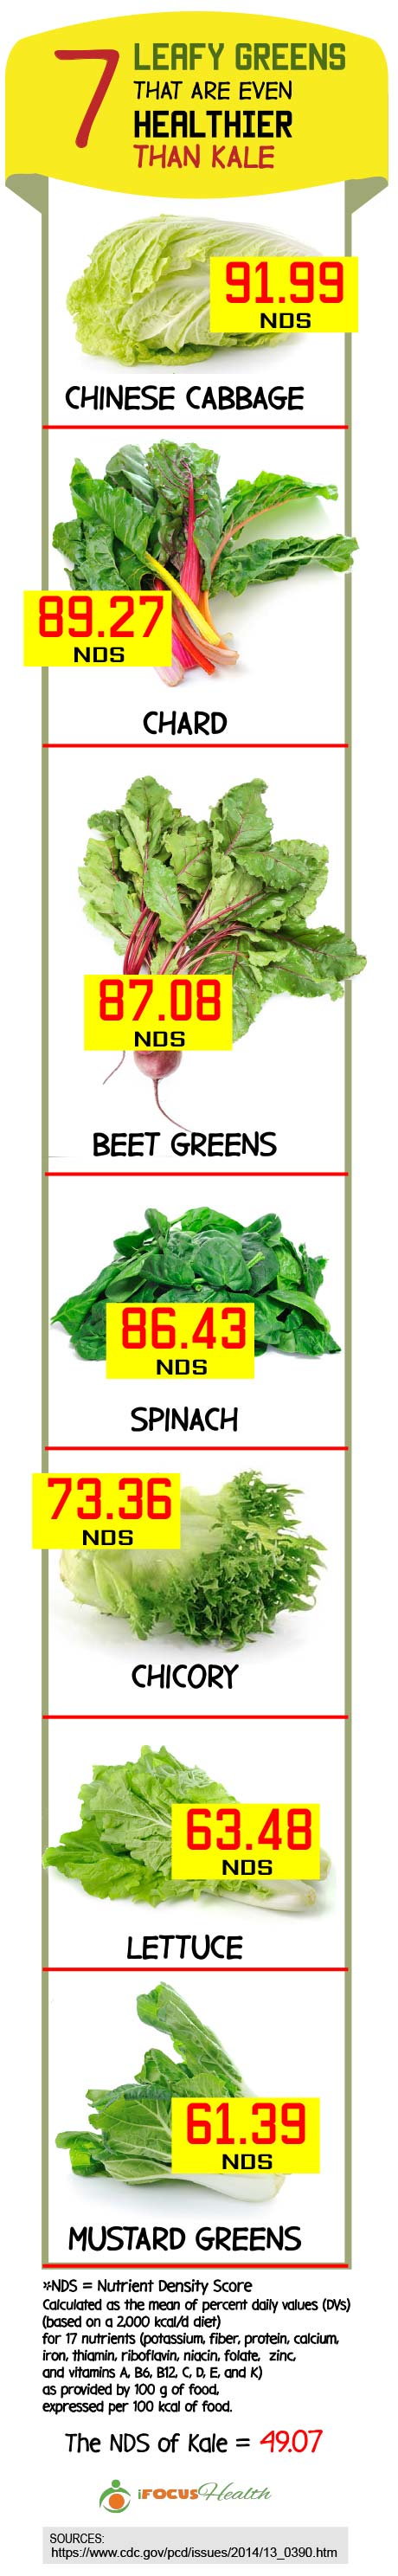 leafy greens that are healthier than kale infographic